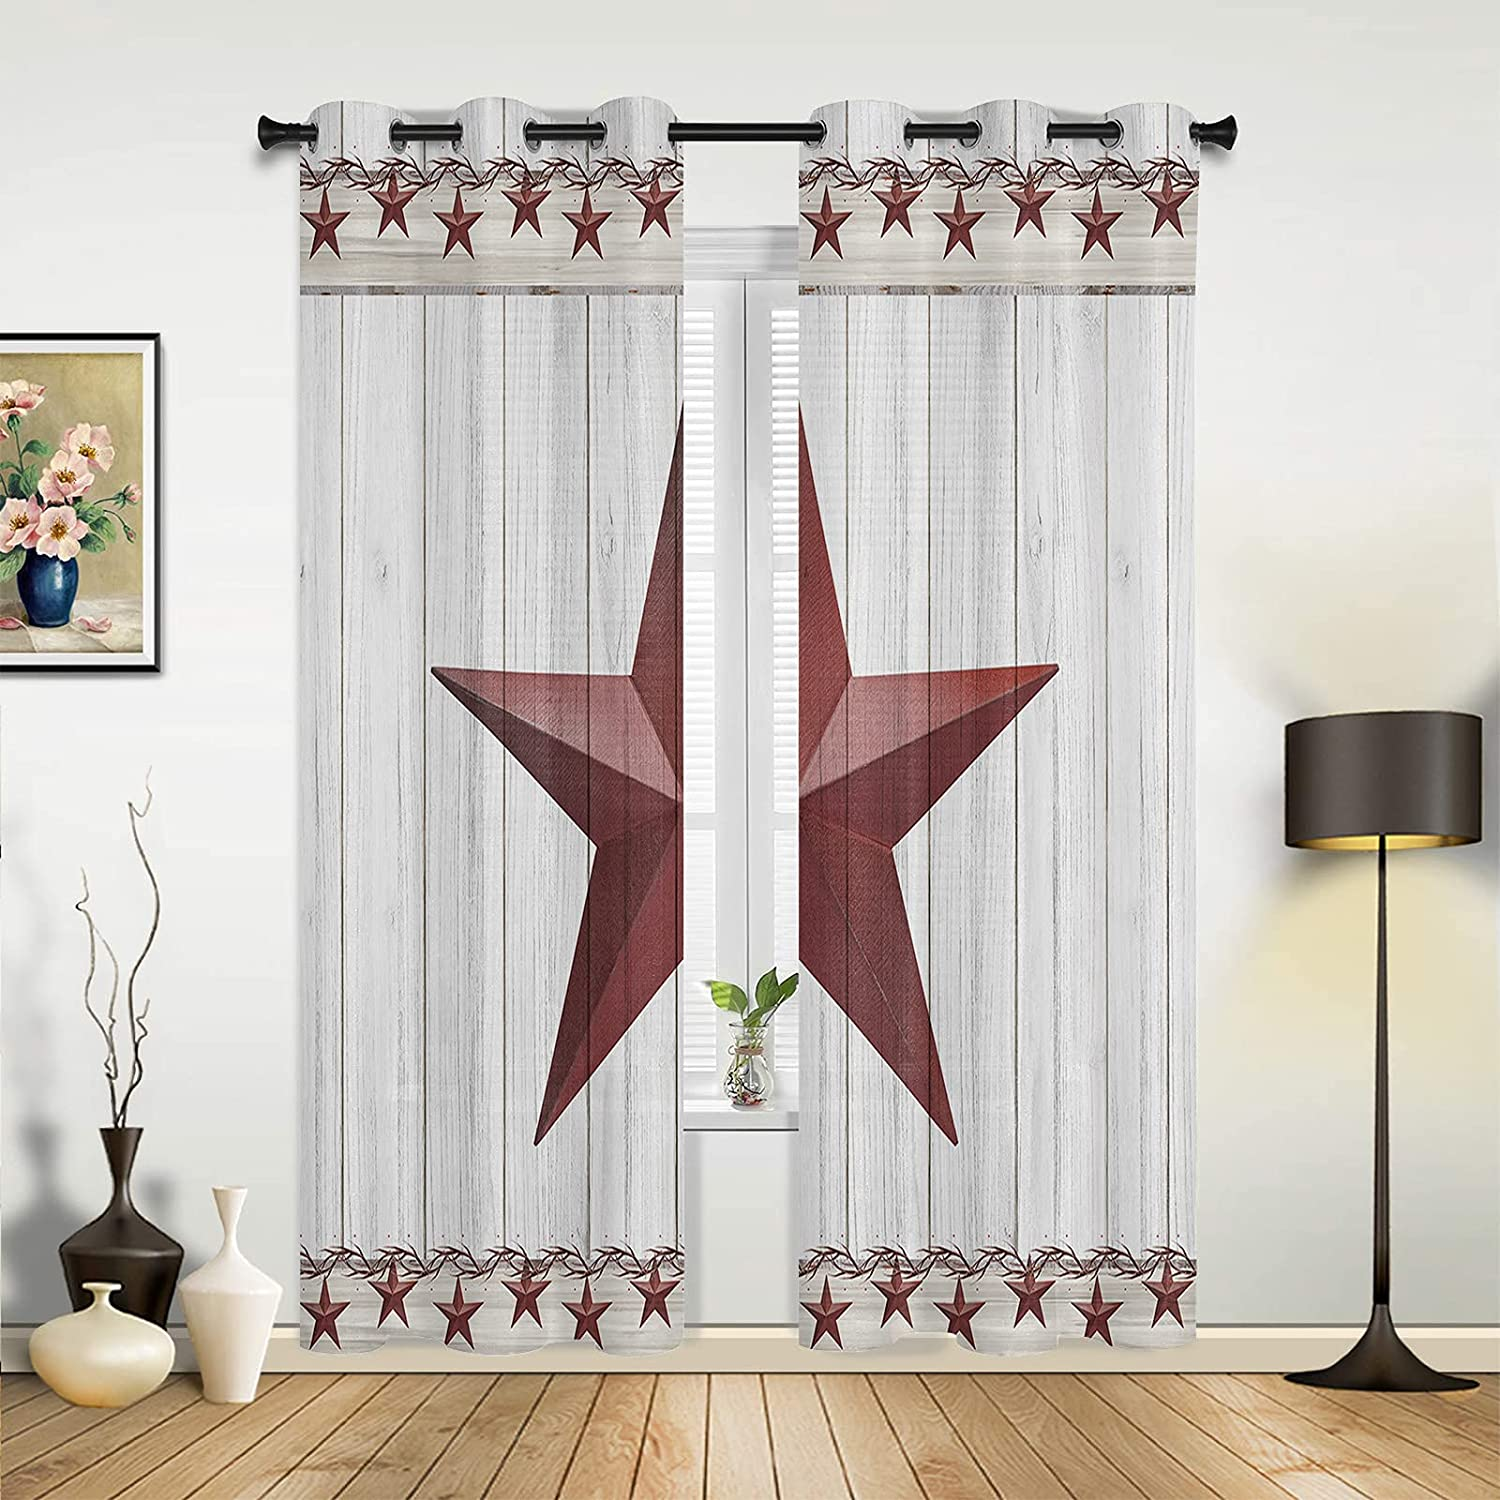 Window Max 66% OFF 5% OFF Sheer Curtains for Bedroom Living Texas Star Room Retro R